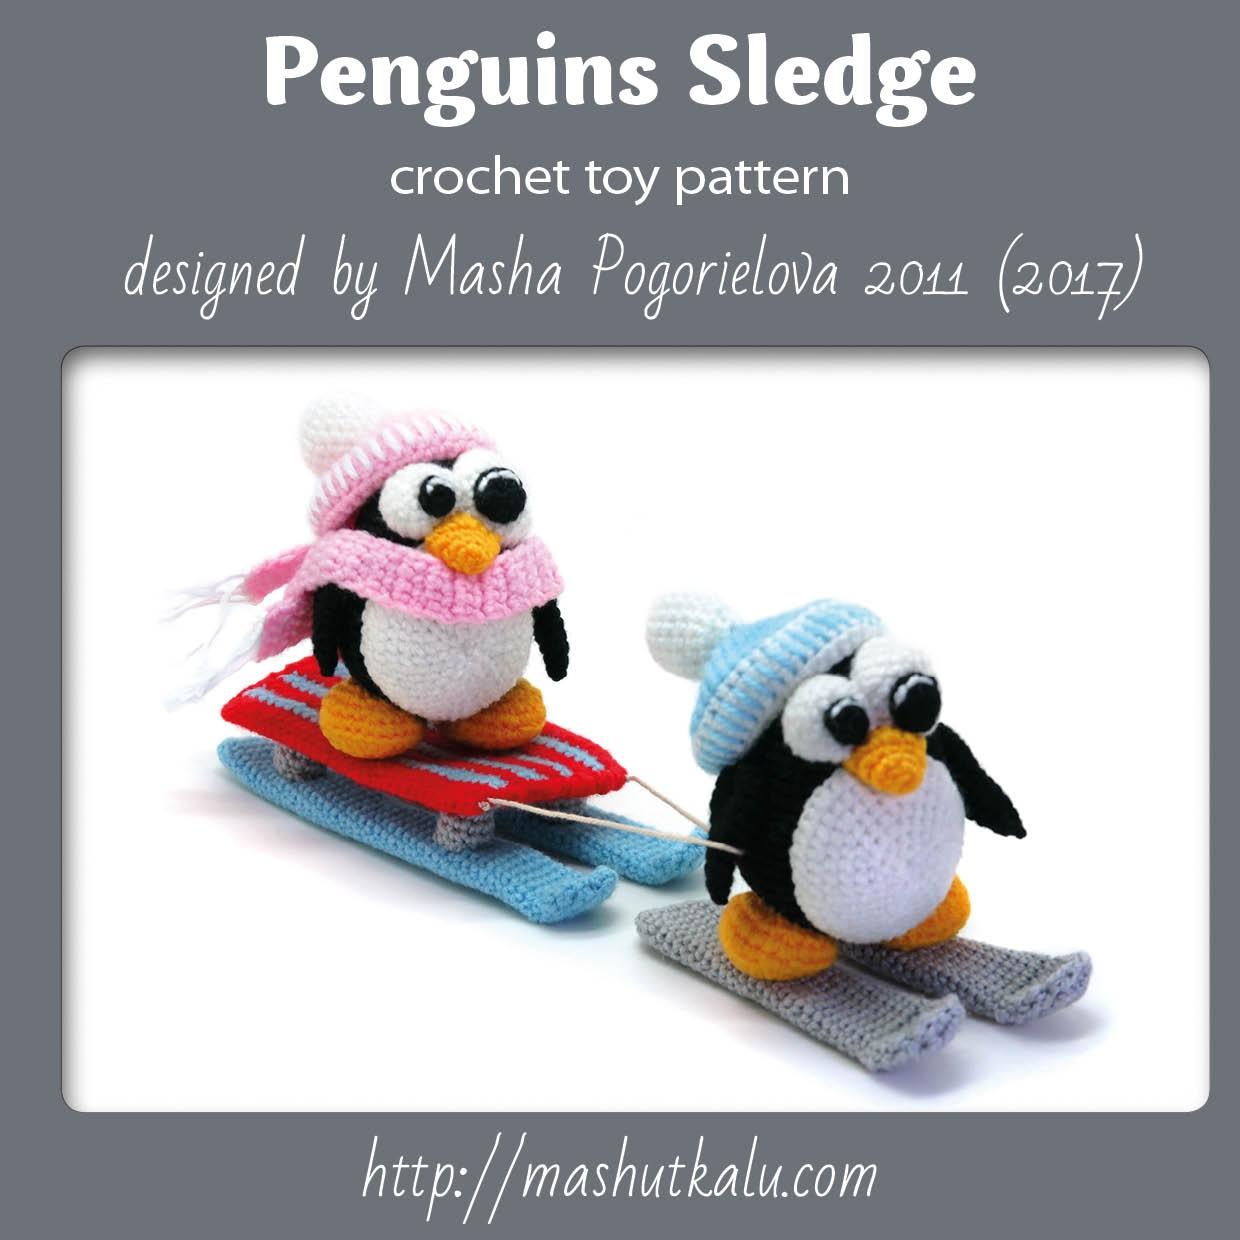 Penguins Sledge